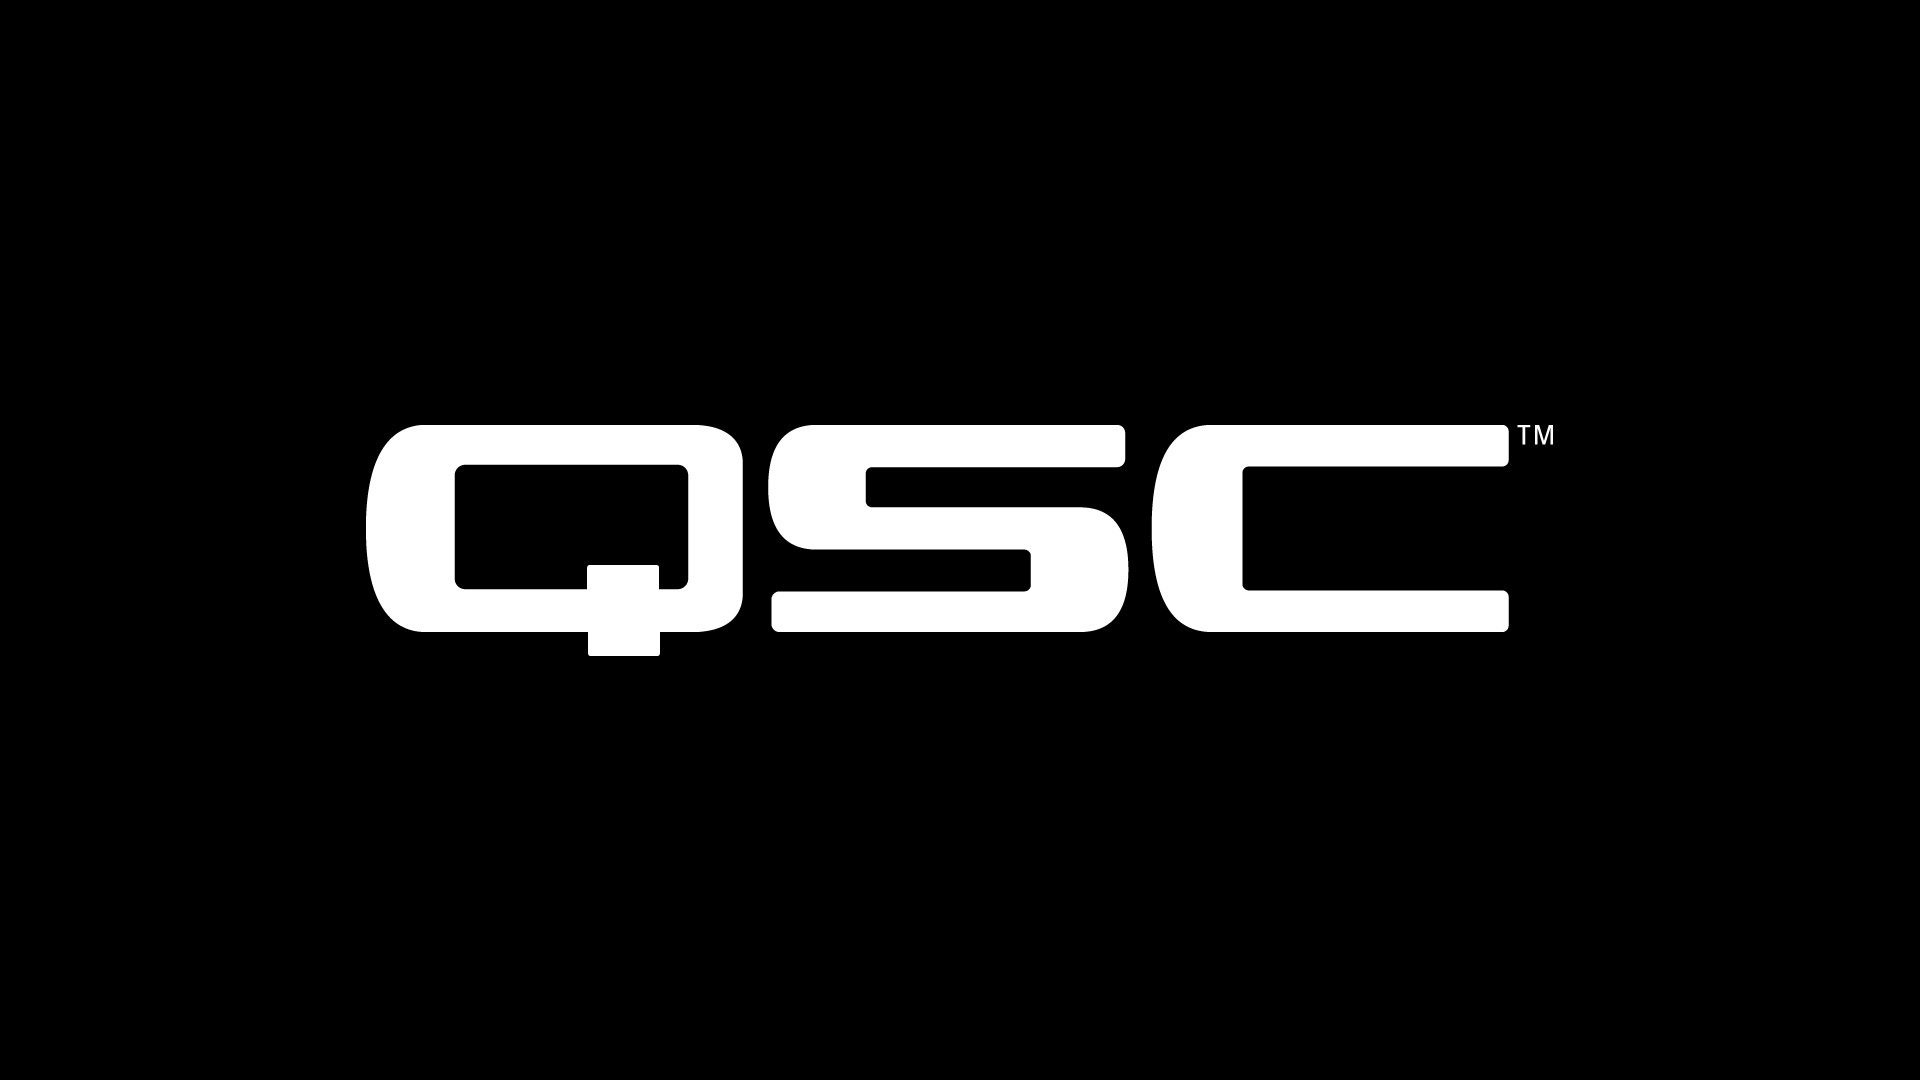 QSC Logo white on black